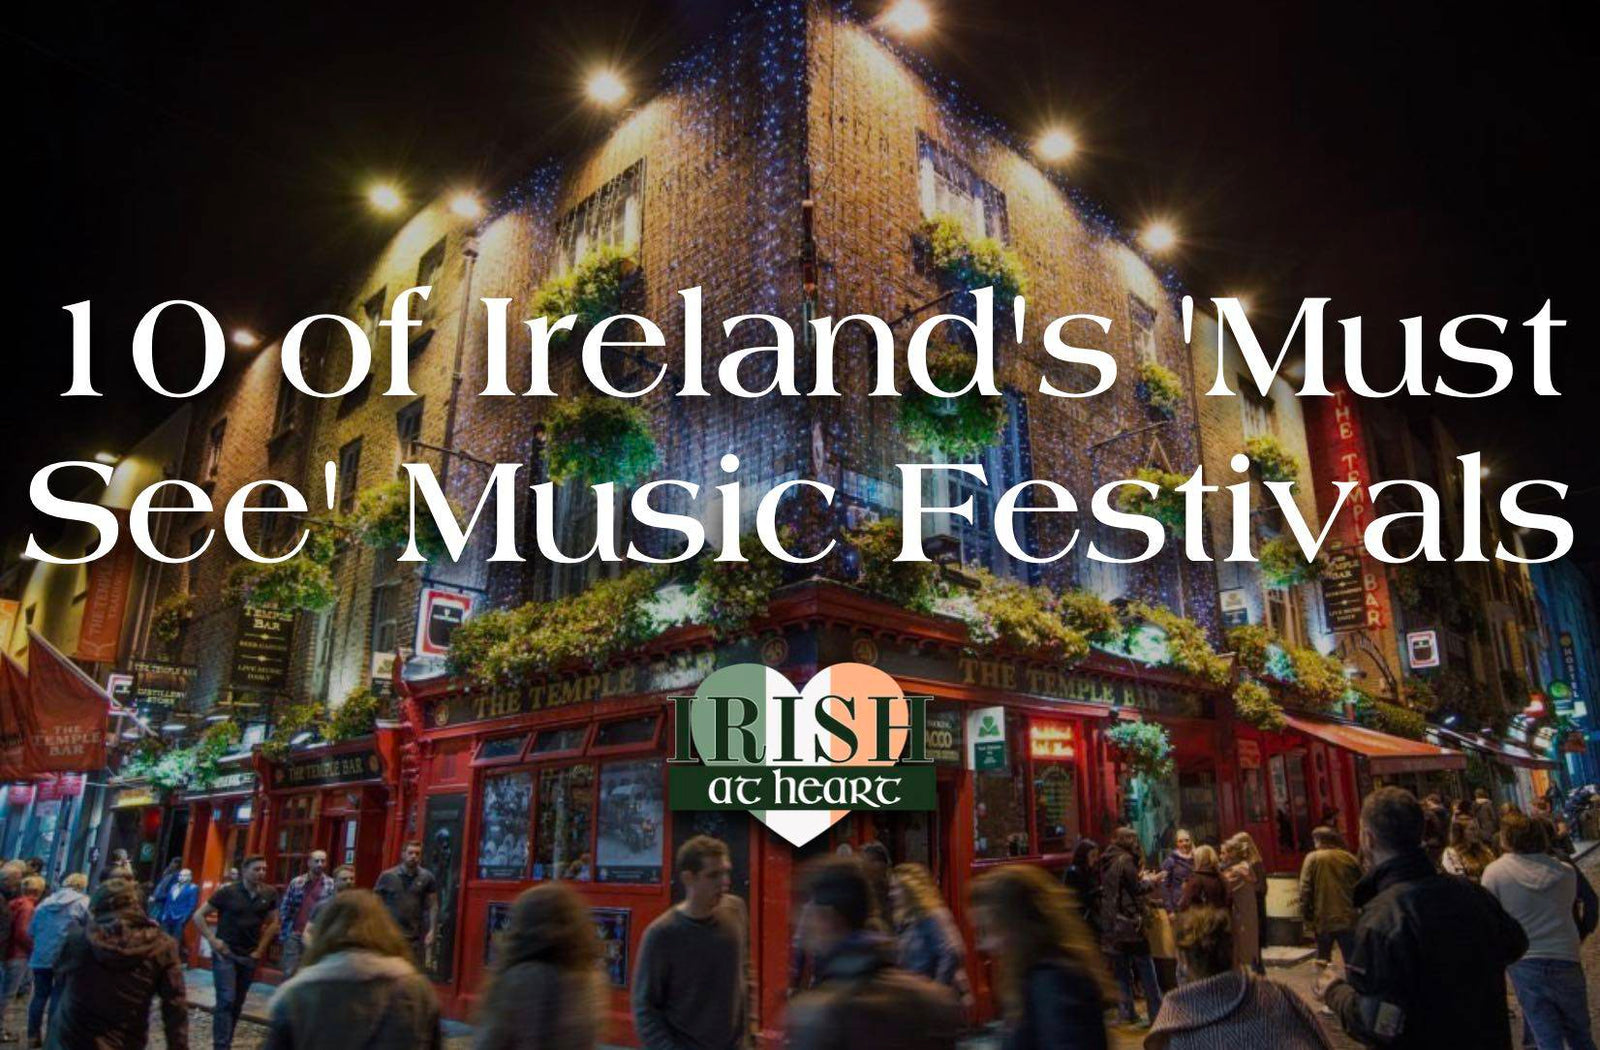 10 of Ireland's 'Must See' Music Festivals